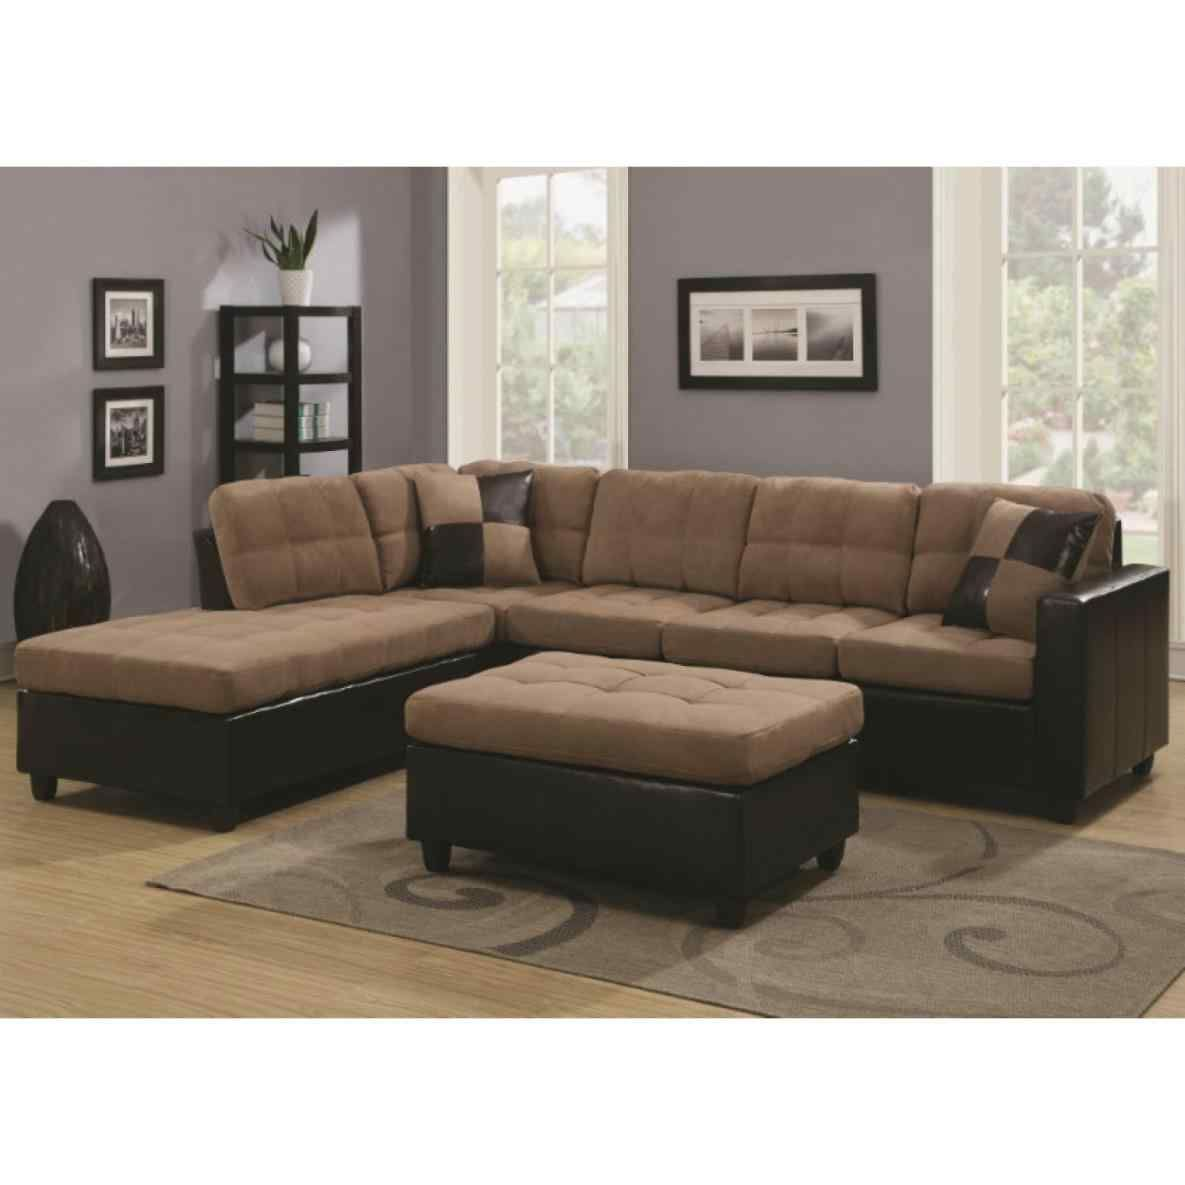 for nice cheap sectional sofas sale l shaped sleeper sofa u interior design l